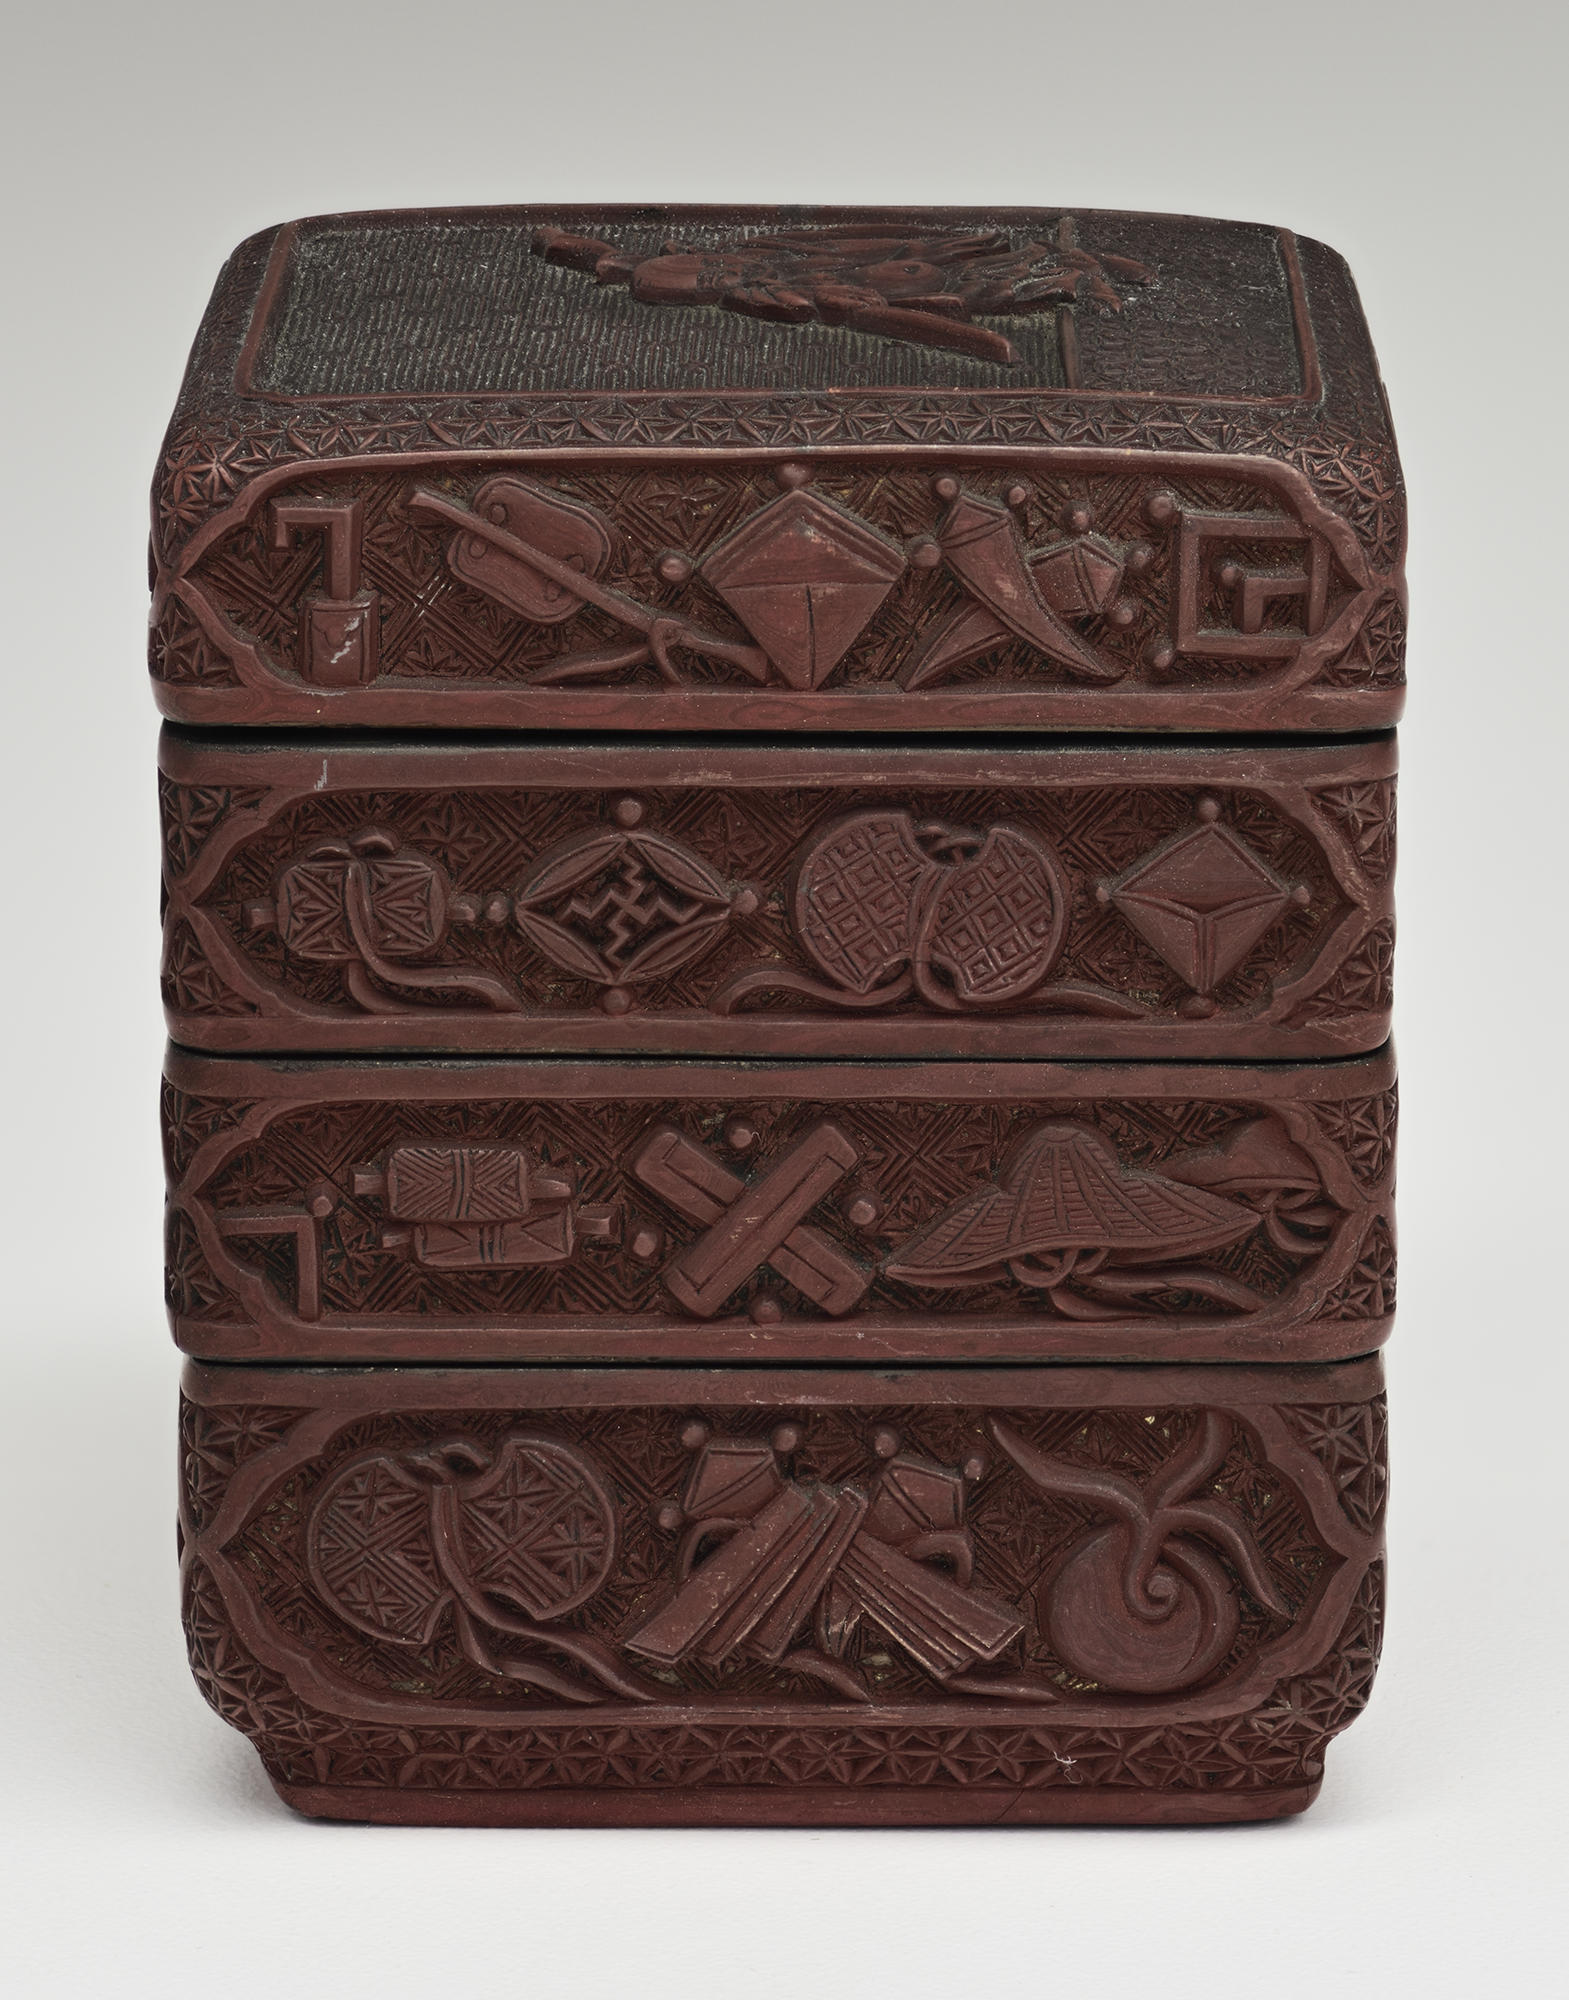 Japanese, Incense Box, early 19th century. Carved red lacquer (tsuishu)